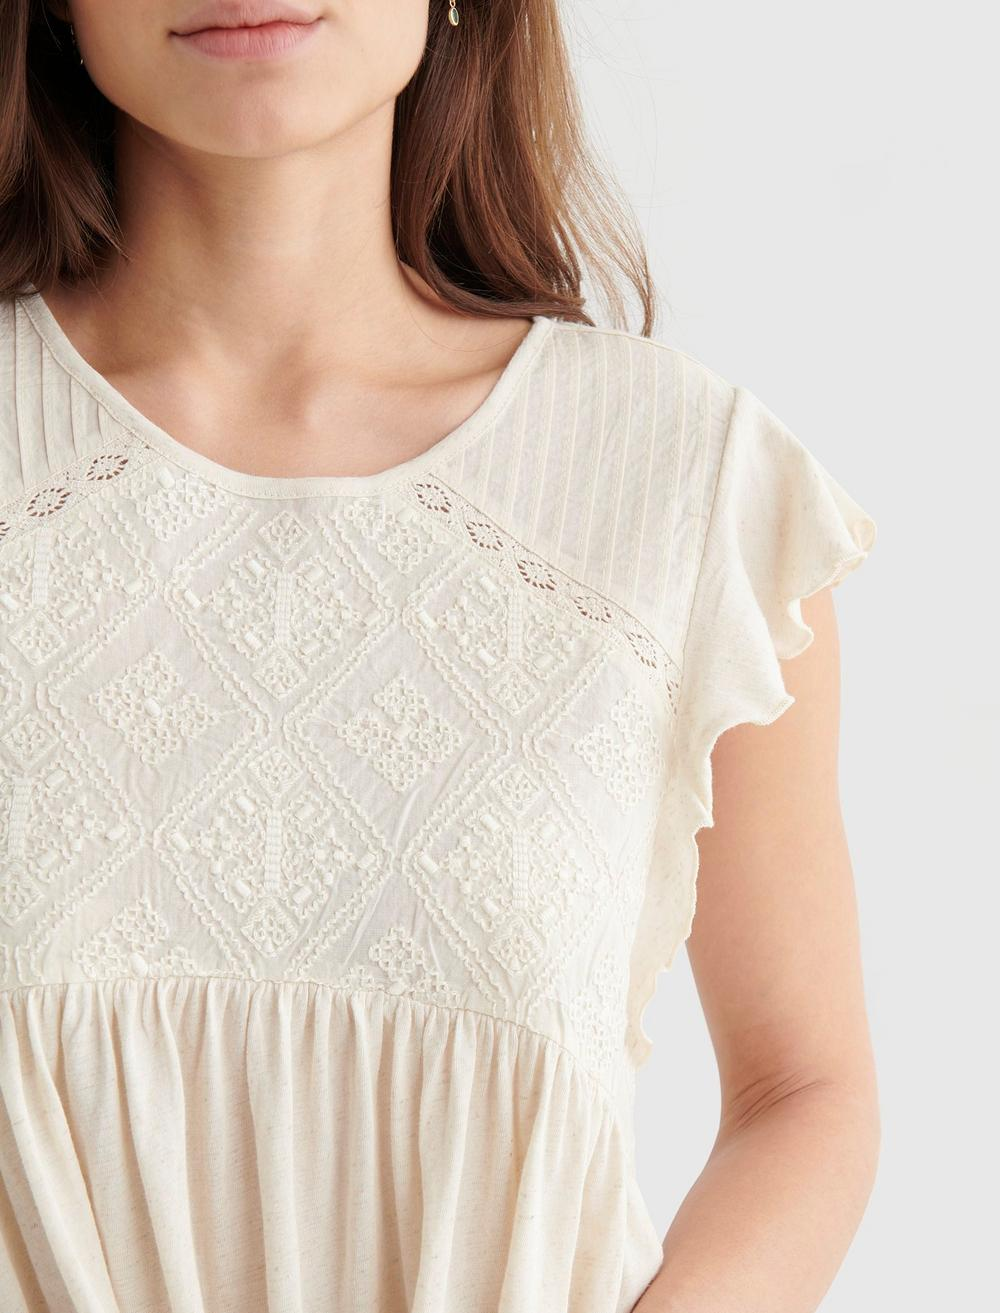 SHORT SLEEVE EMBROIDERED DOLMAN TOP, image 4